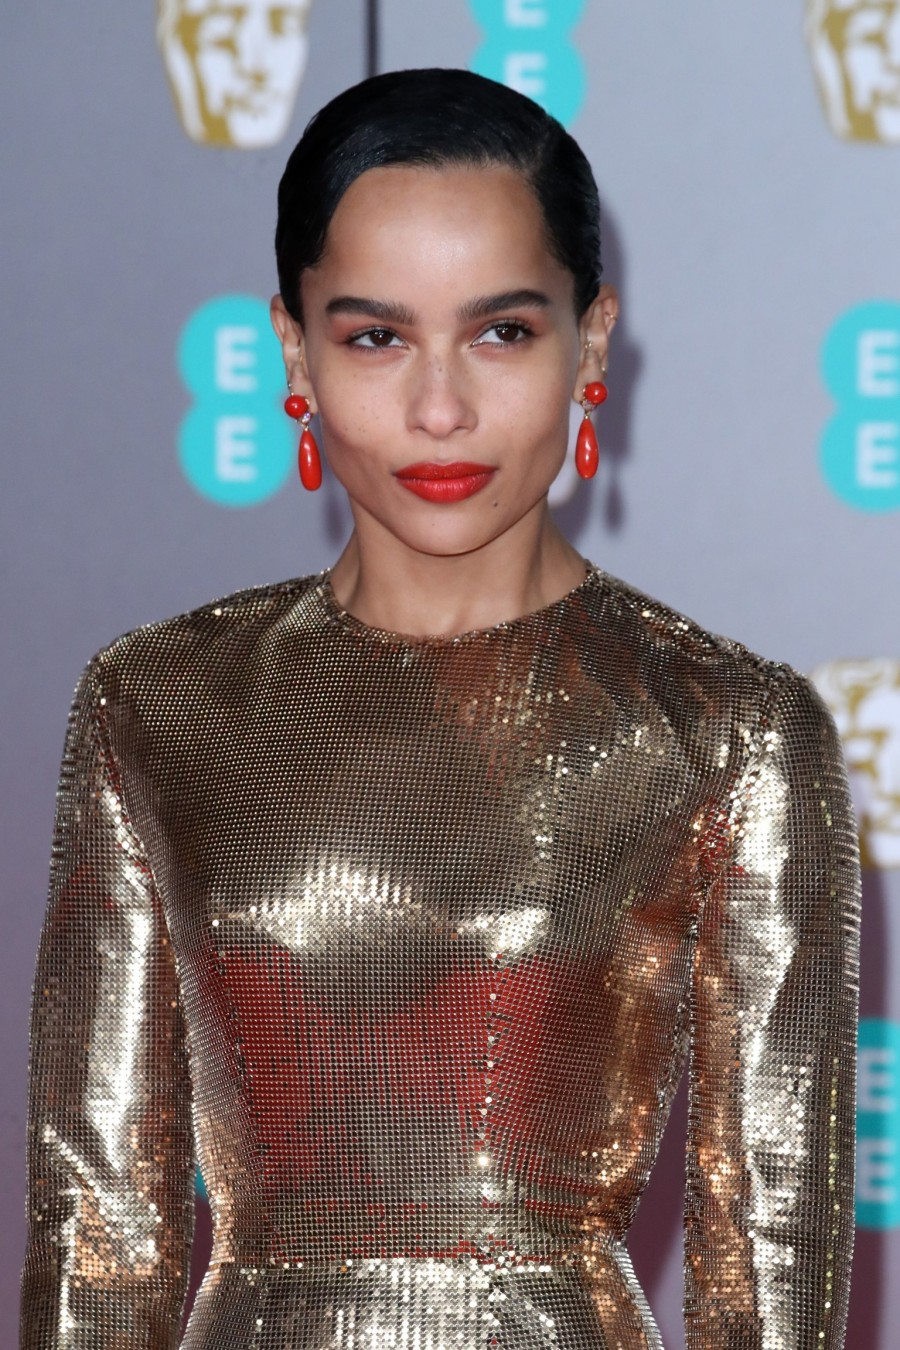 Zoë Kravitz in Saint Laurent